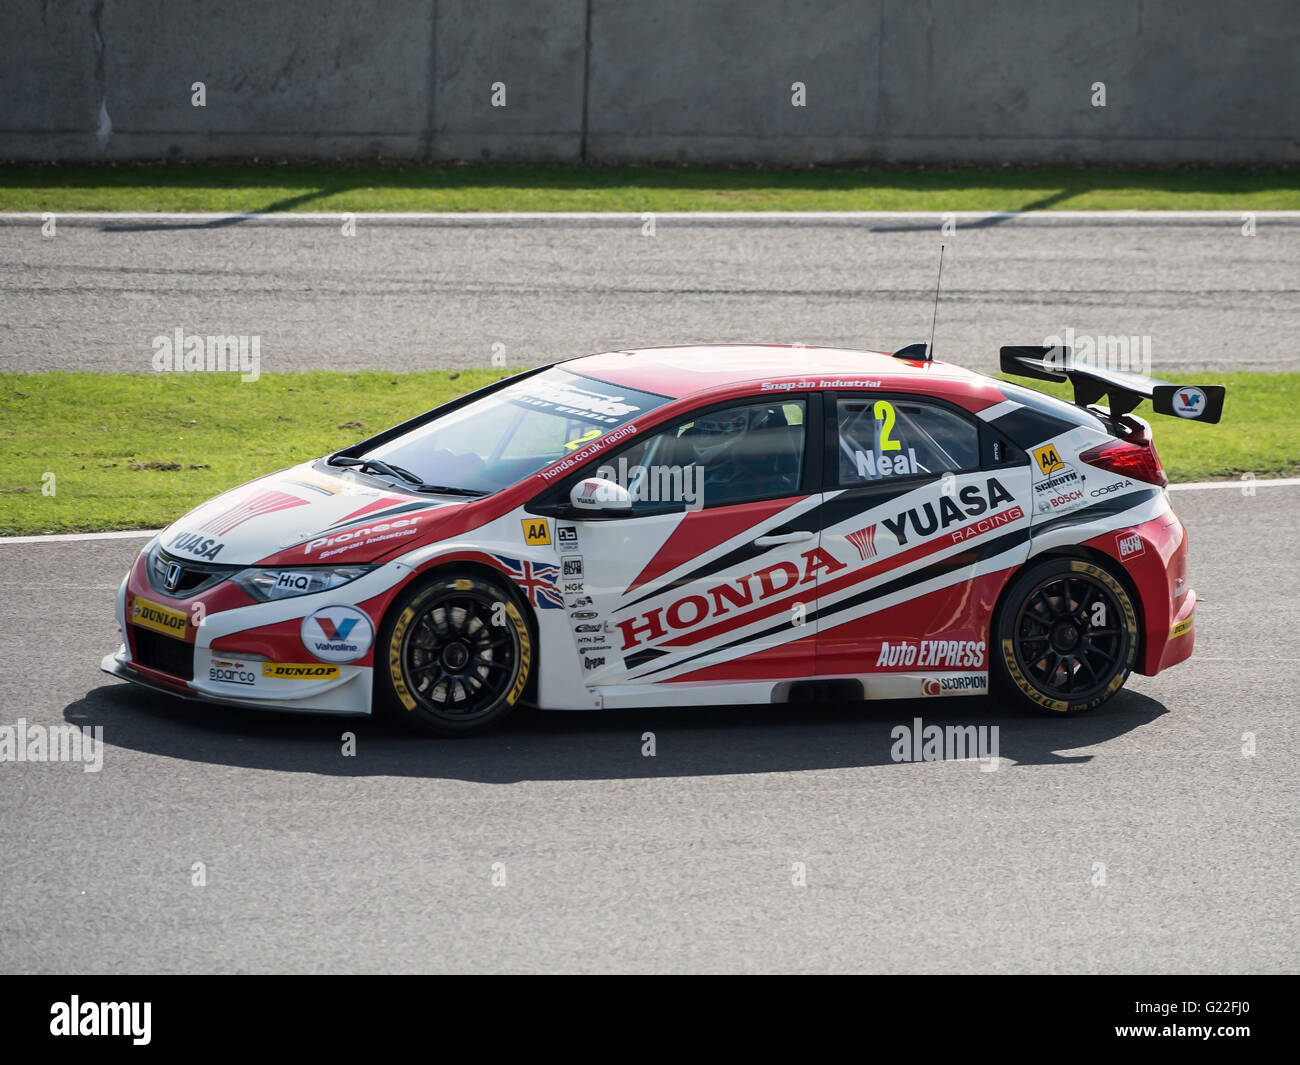 British Touring Cars BTCC 2013 at Silverstone race track - Stock Image